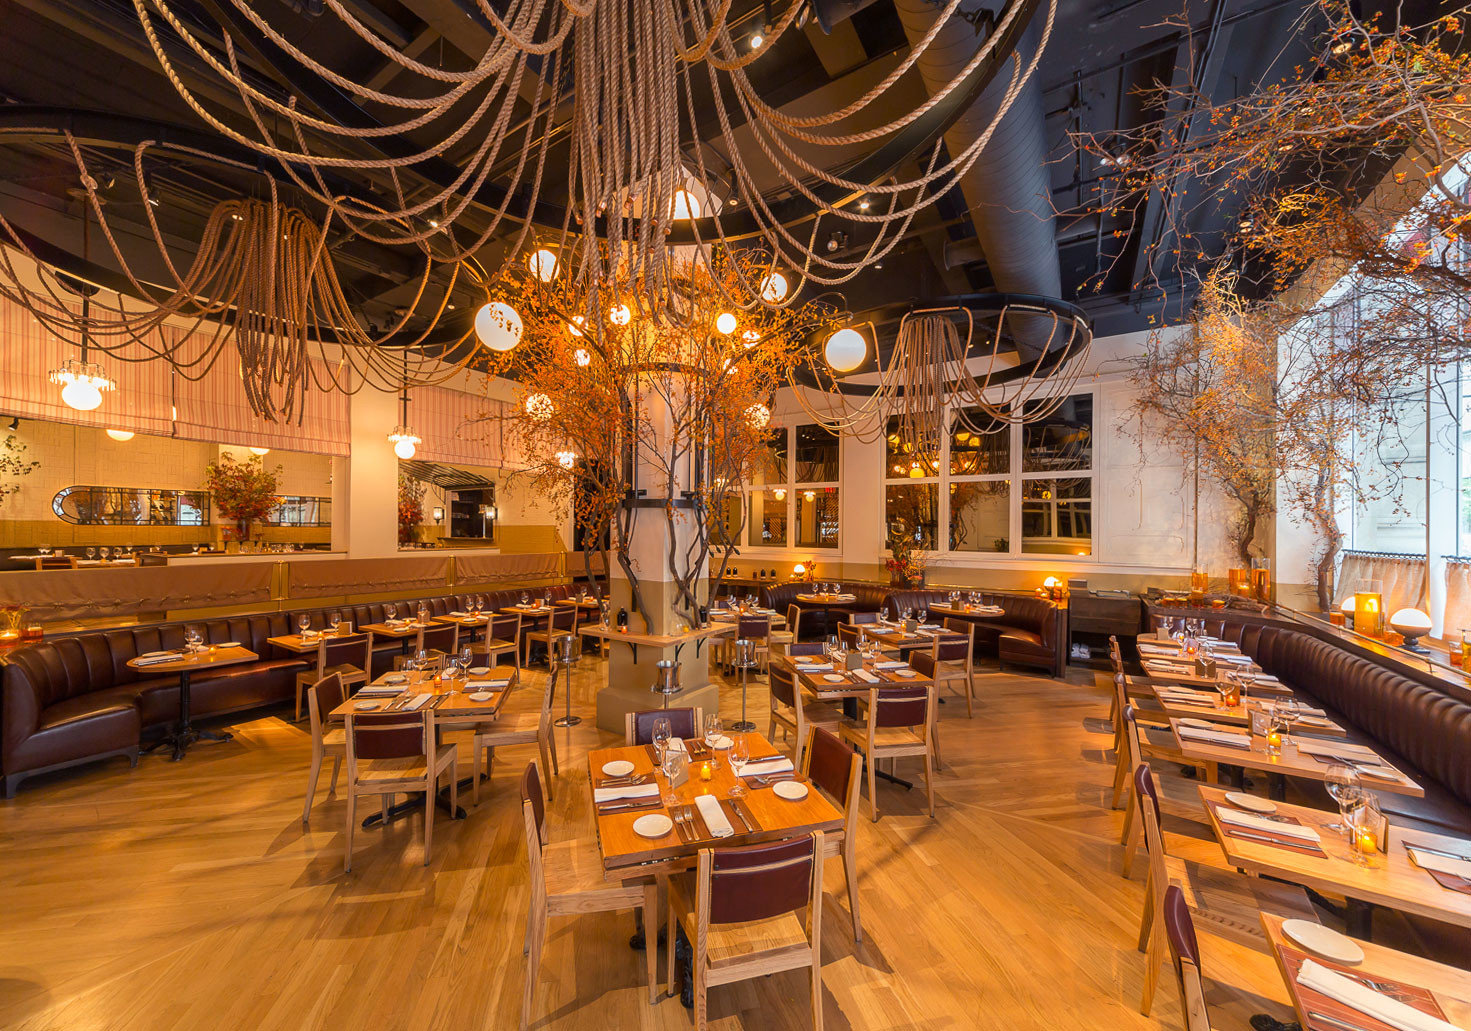 ambient lighting charming cozy Dining Elegant extravagant fancy interior lights Offbeat regal restaurant sophisticated Style + Design stylish tables function hall meal estate interior design Lobby ballroom